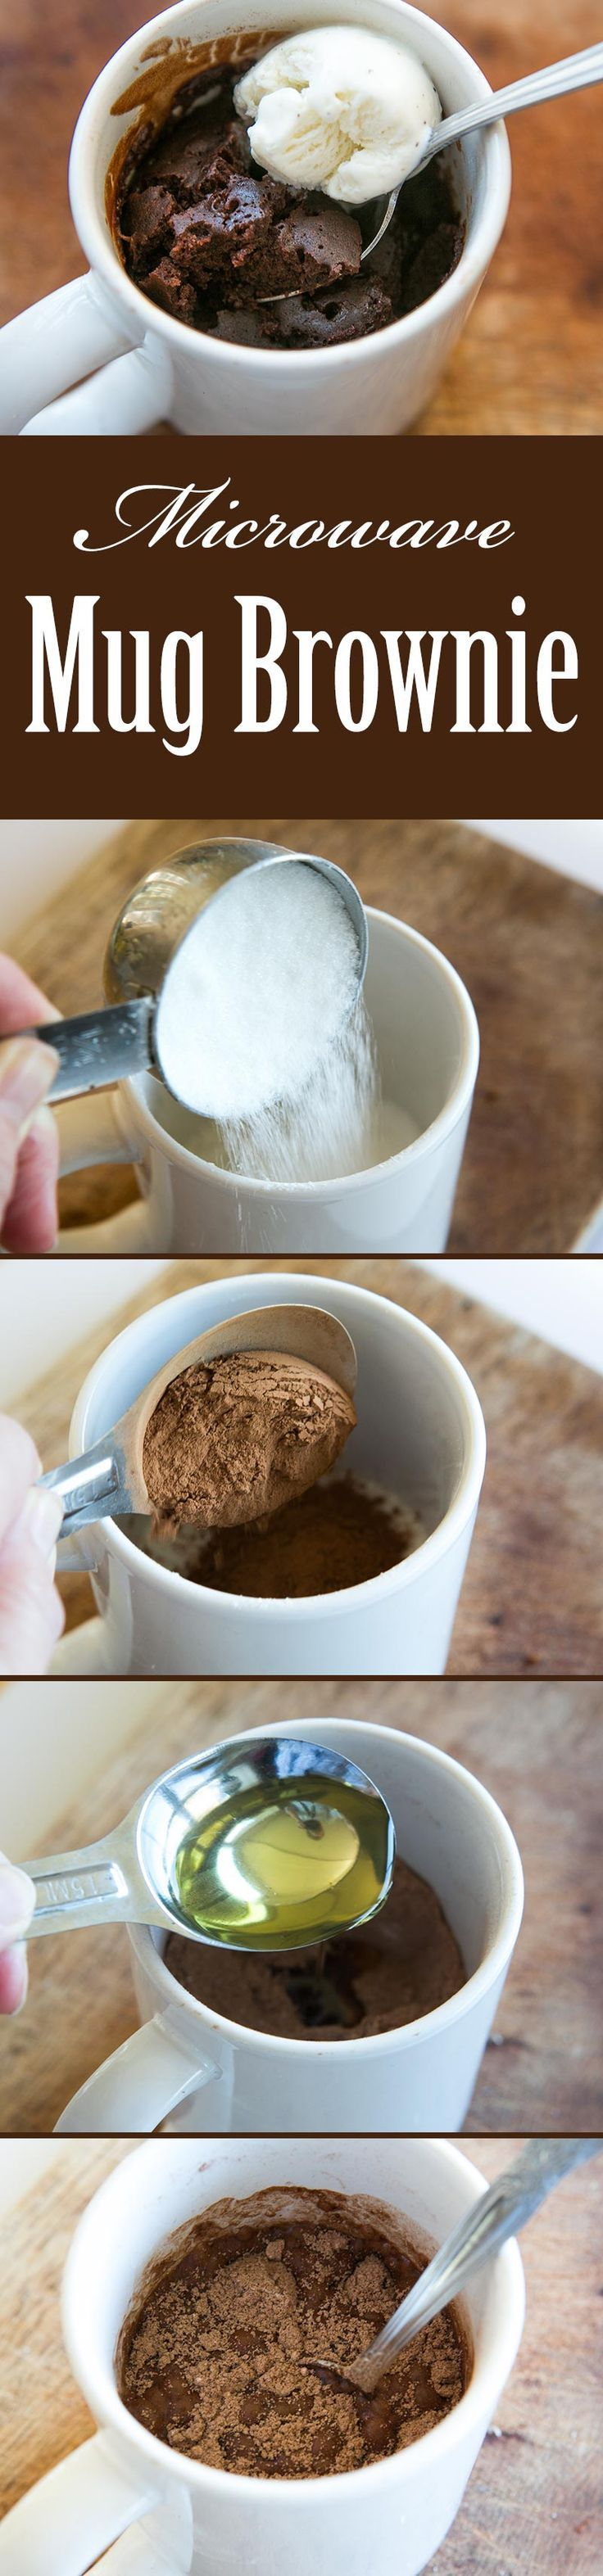 Easiest brownie ever! Single serving brownie microwaved in a mug. Takes only 5 minutes to make! On http://SimplyRecipes.com